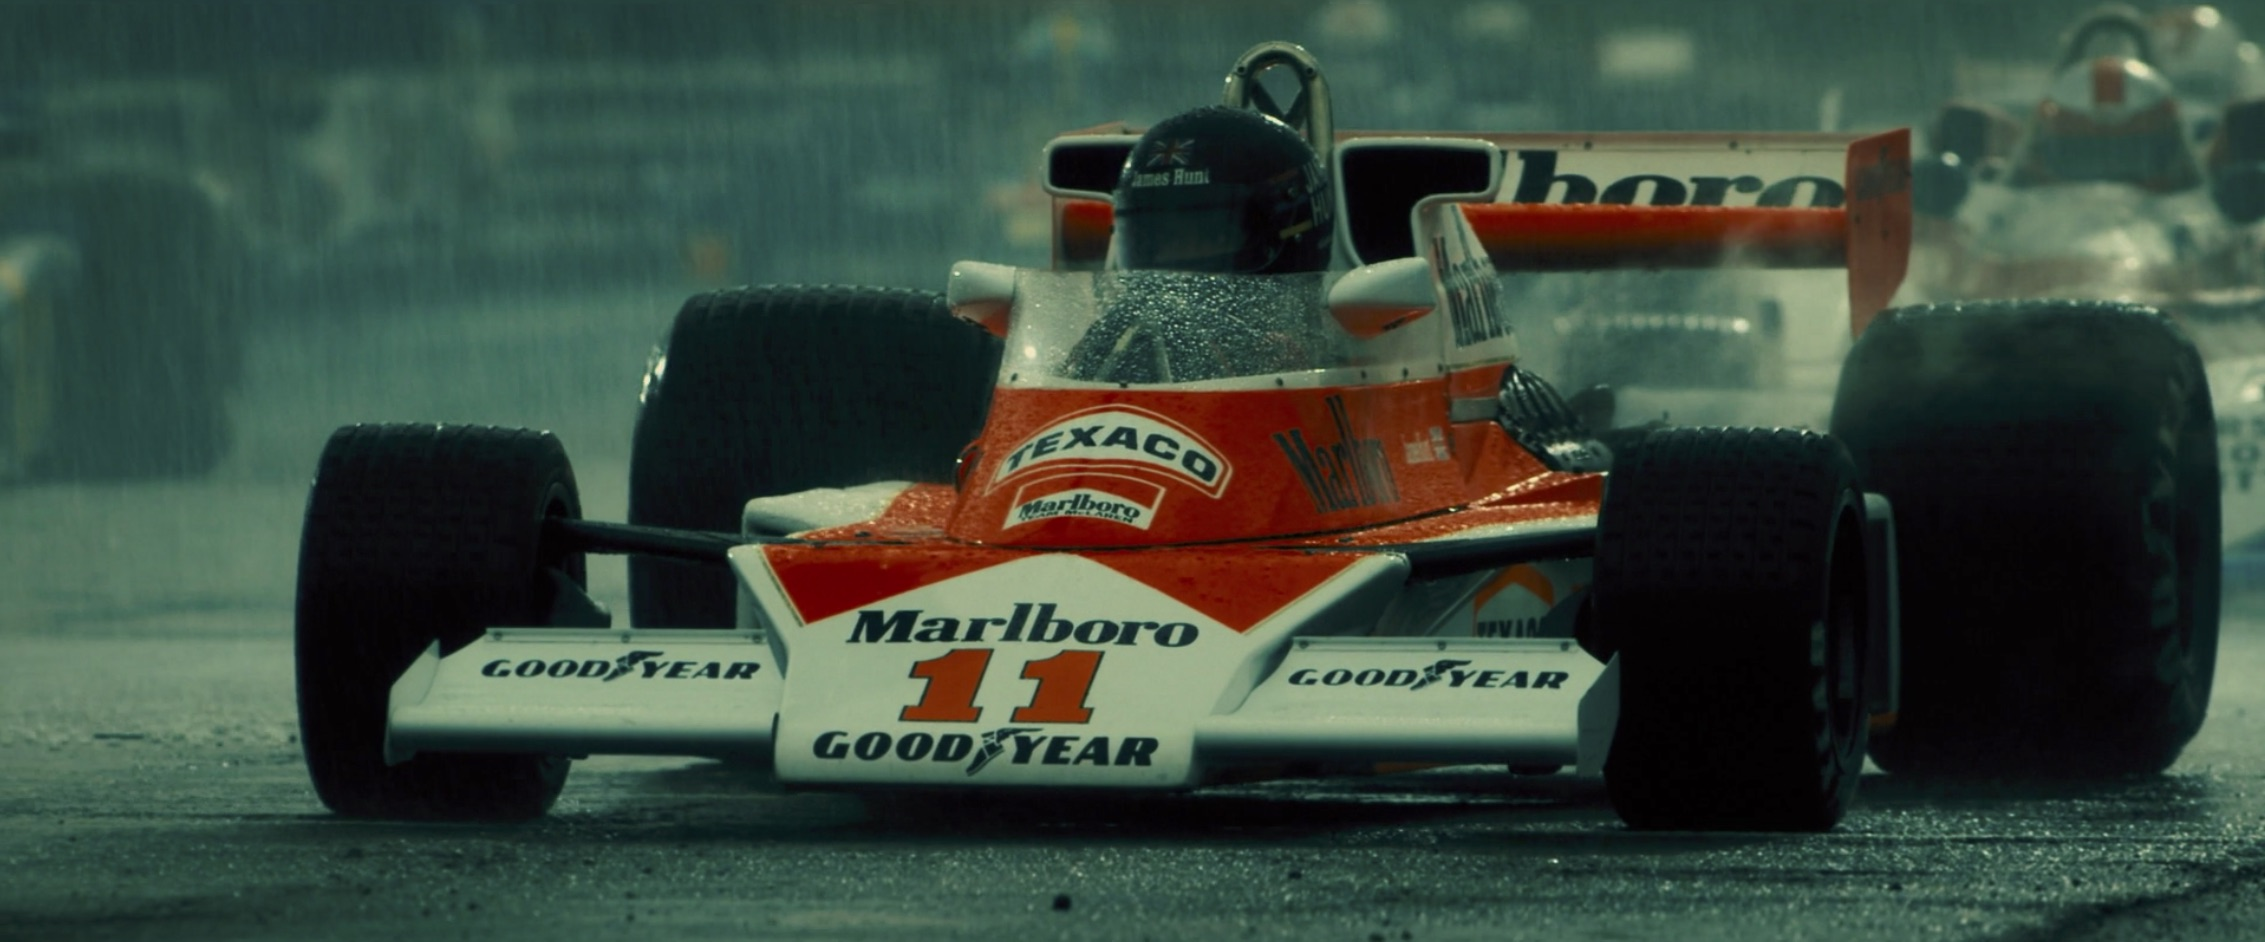 Rush perfectly captures the danger and excitement of 1970's F1